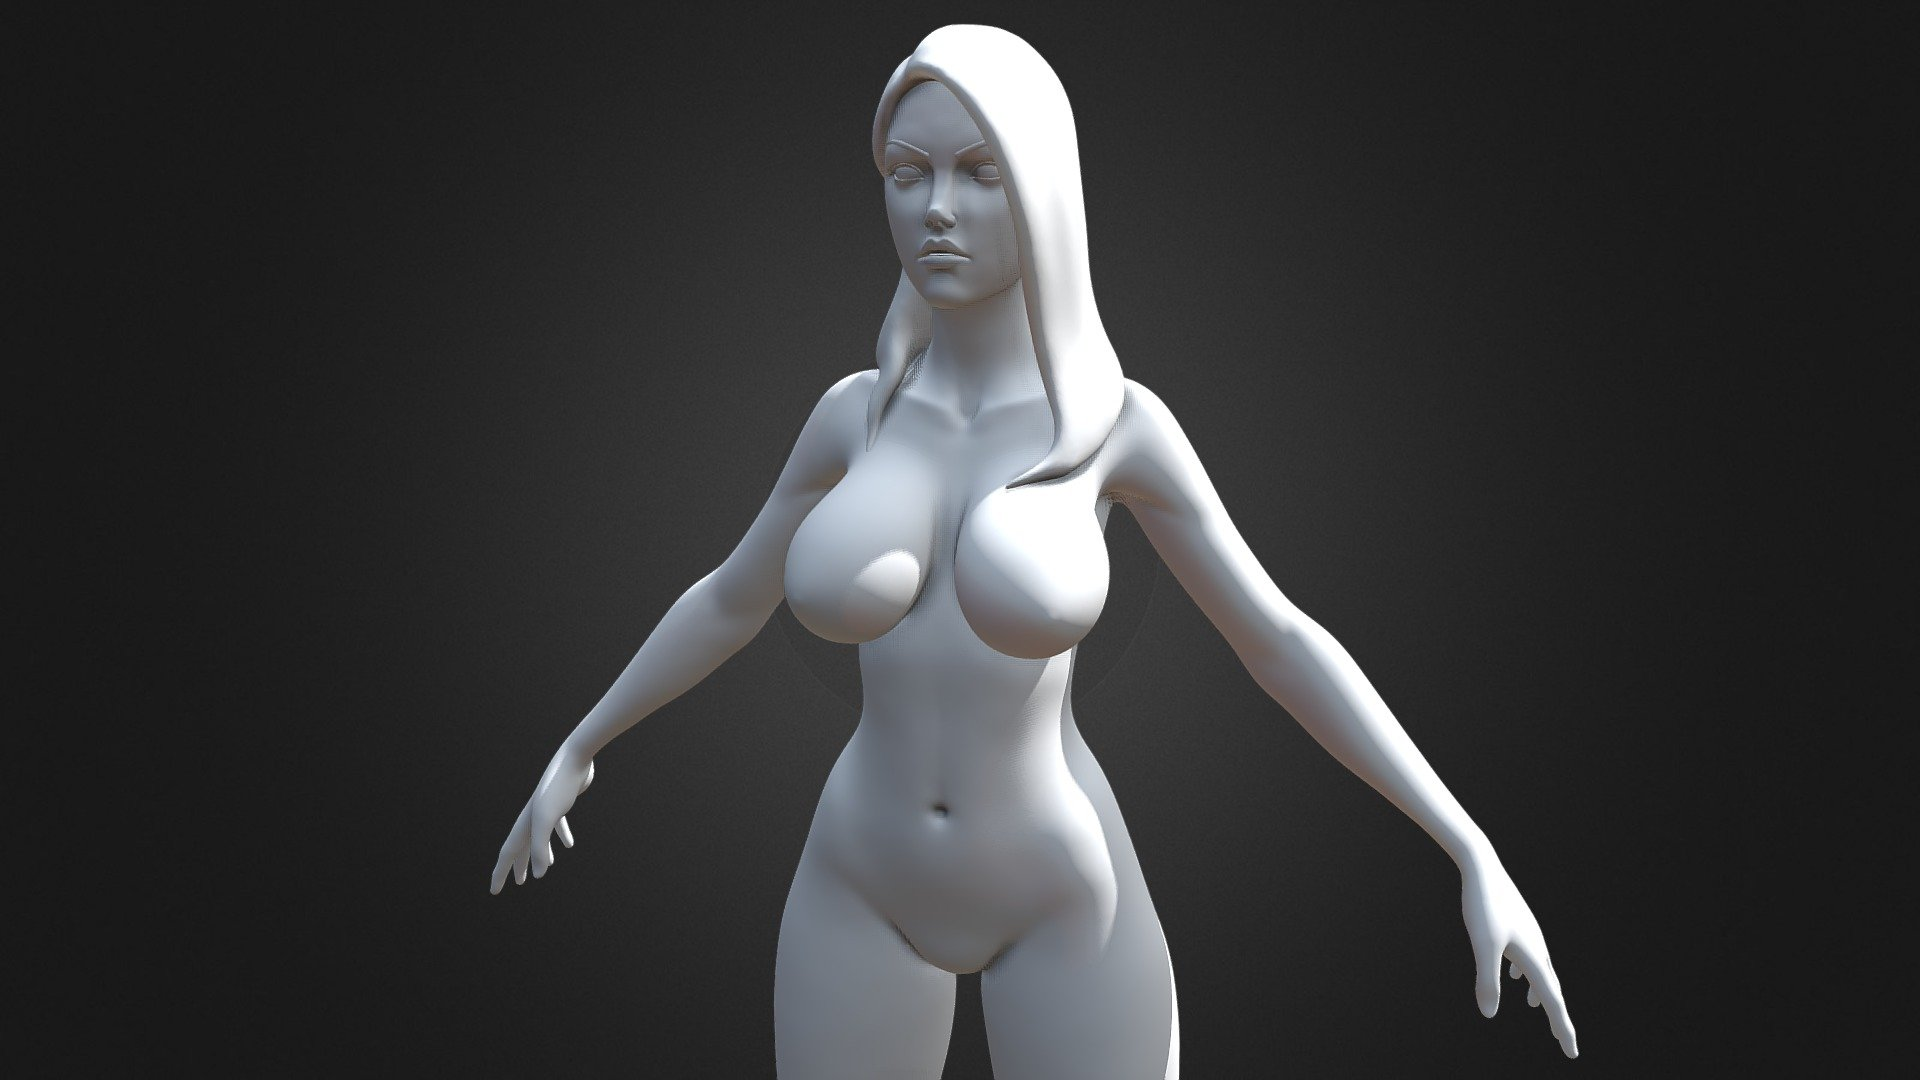 Modelling with large breasts Stylized Female Large Breasts Highpoly Version Buy Royalty Free 3d Model By Rodesqa Rodesqa 99ac739